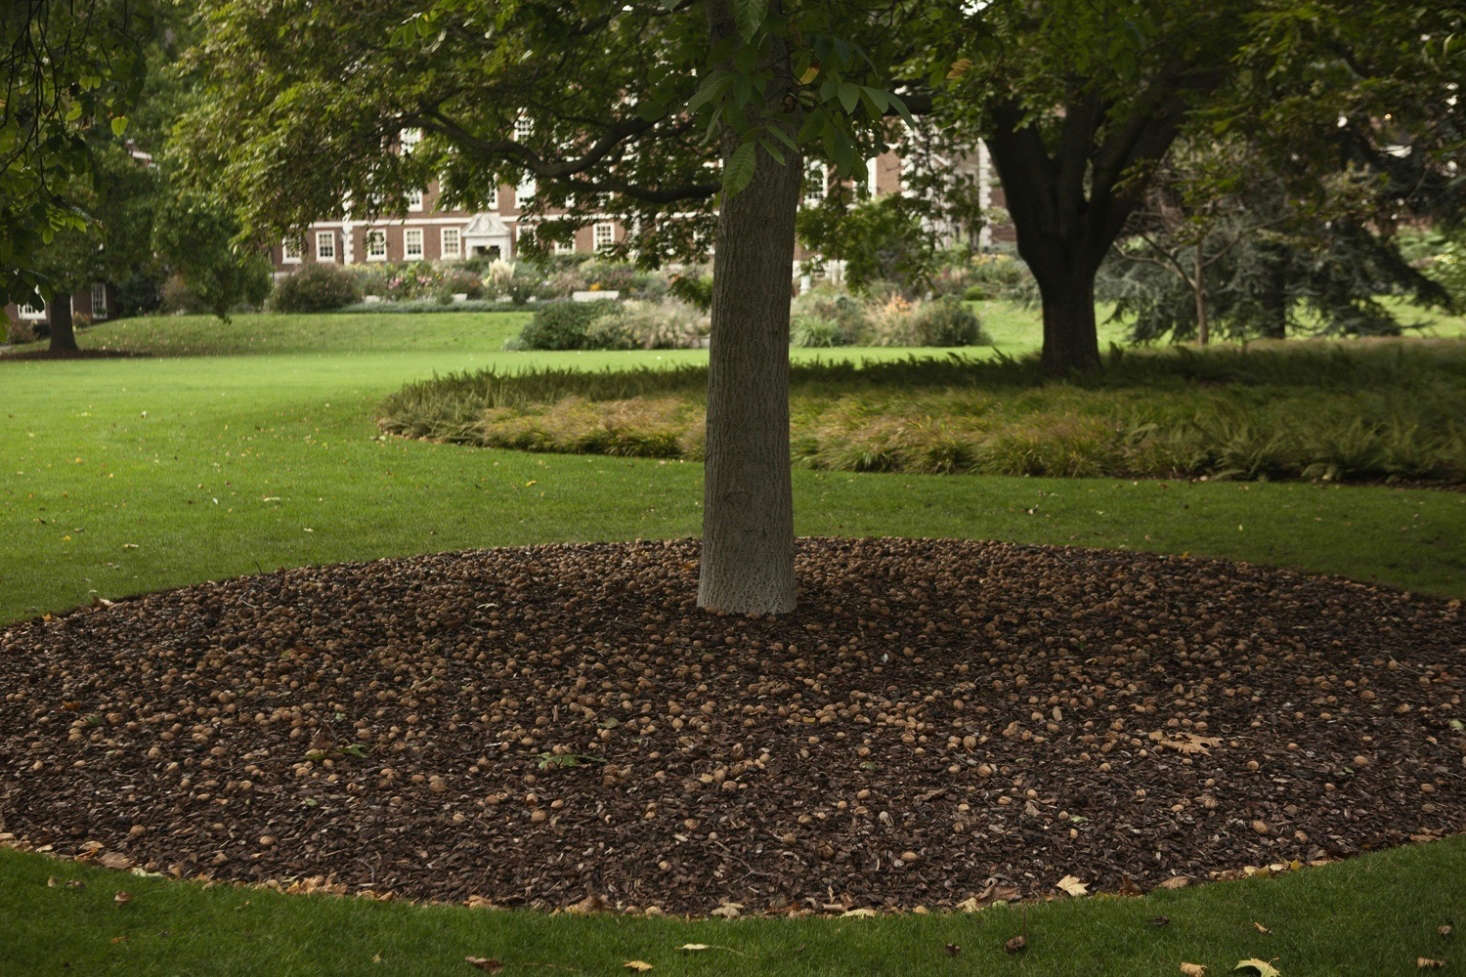 A large circle of mulch around a walnut tree. Photograph by Jim Powell, from Almost Private: A Secret River Garden in Central London.